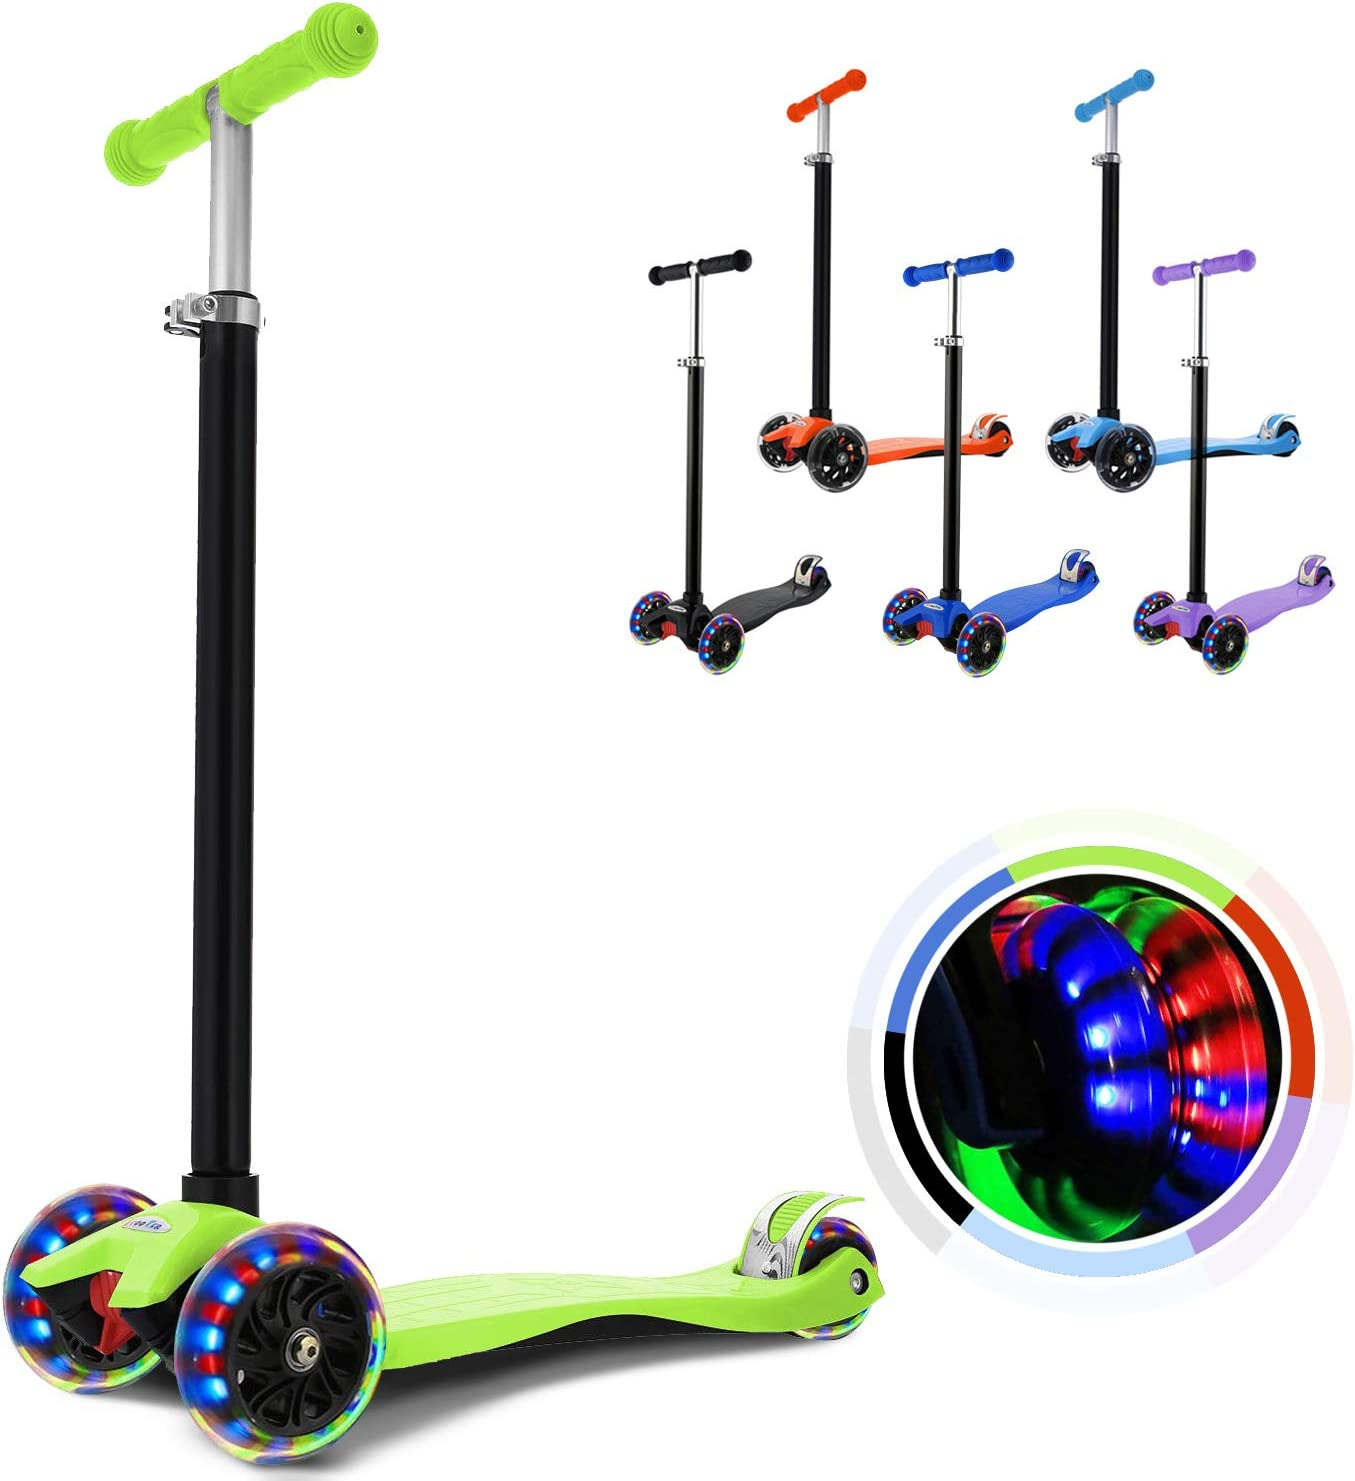 Adjustable Height Kids Scooter for Boys and Girls 3-12 WeSkate Kick Scooter for Kids 3 Wheels LED Light Flashing PU Wheels